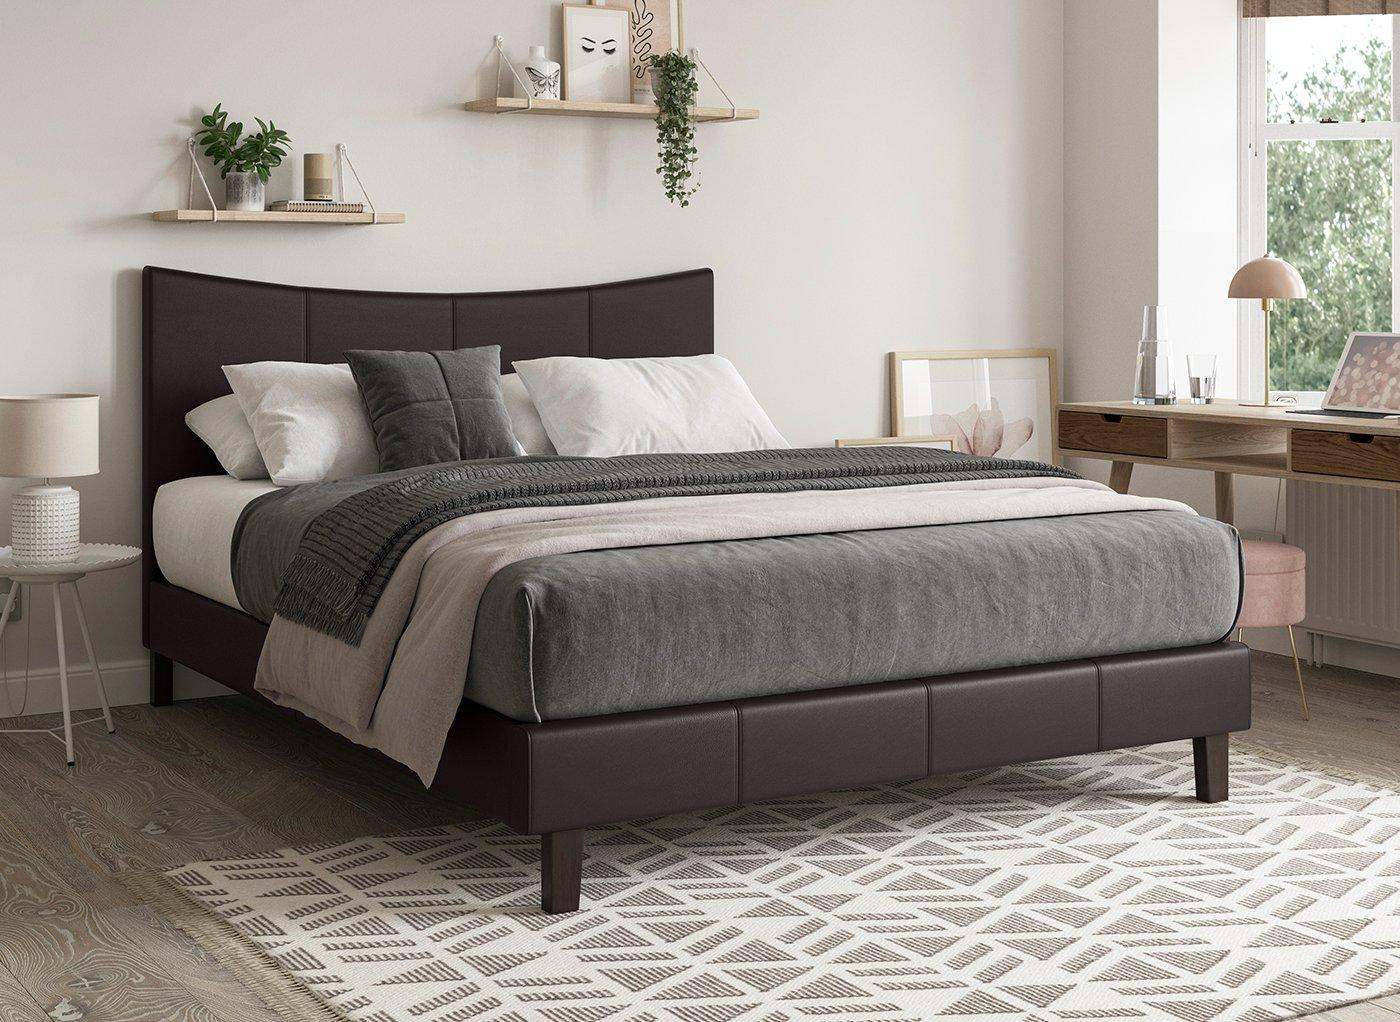 Jakarta Faux Leather Bed Frame Upholstered Beds Beds Dreams